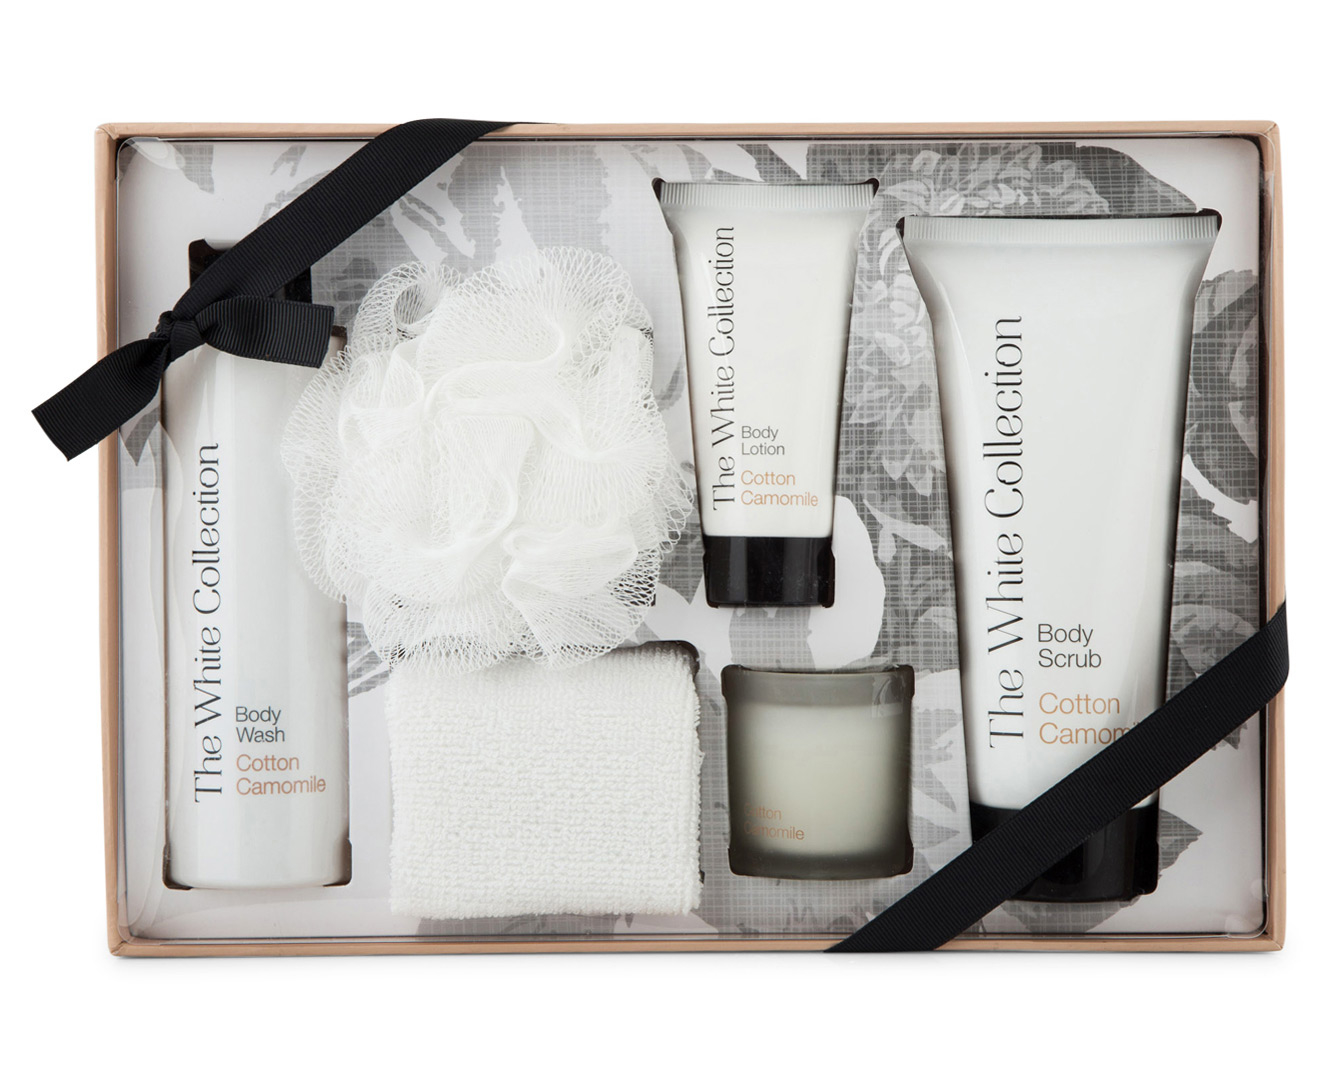 The White Collection Cotton Camomile Body Pamper Pack